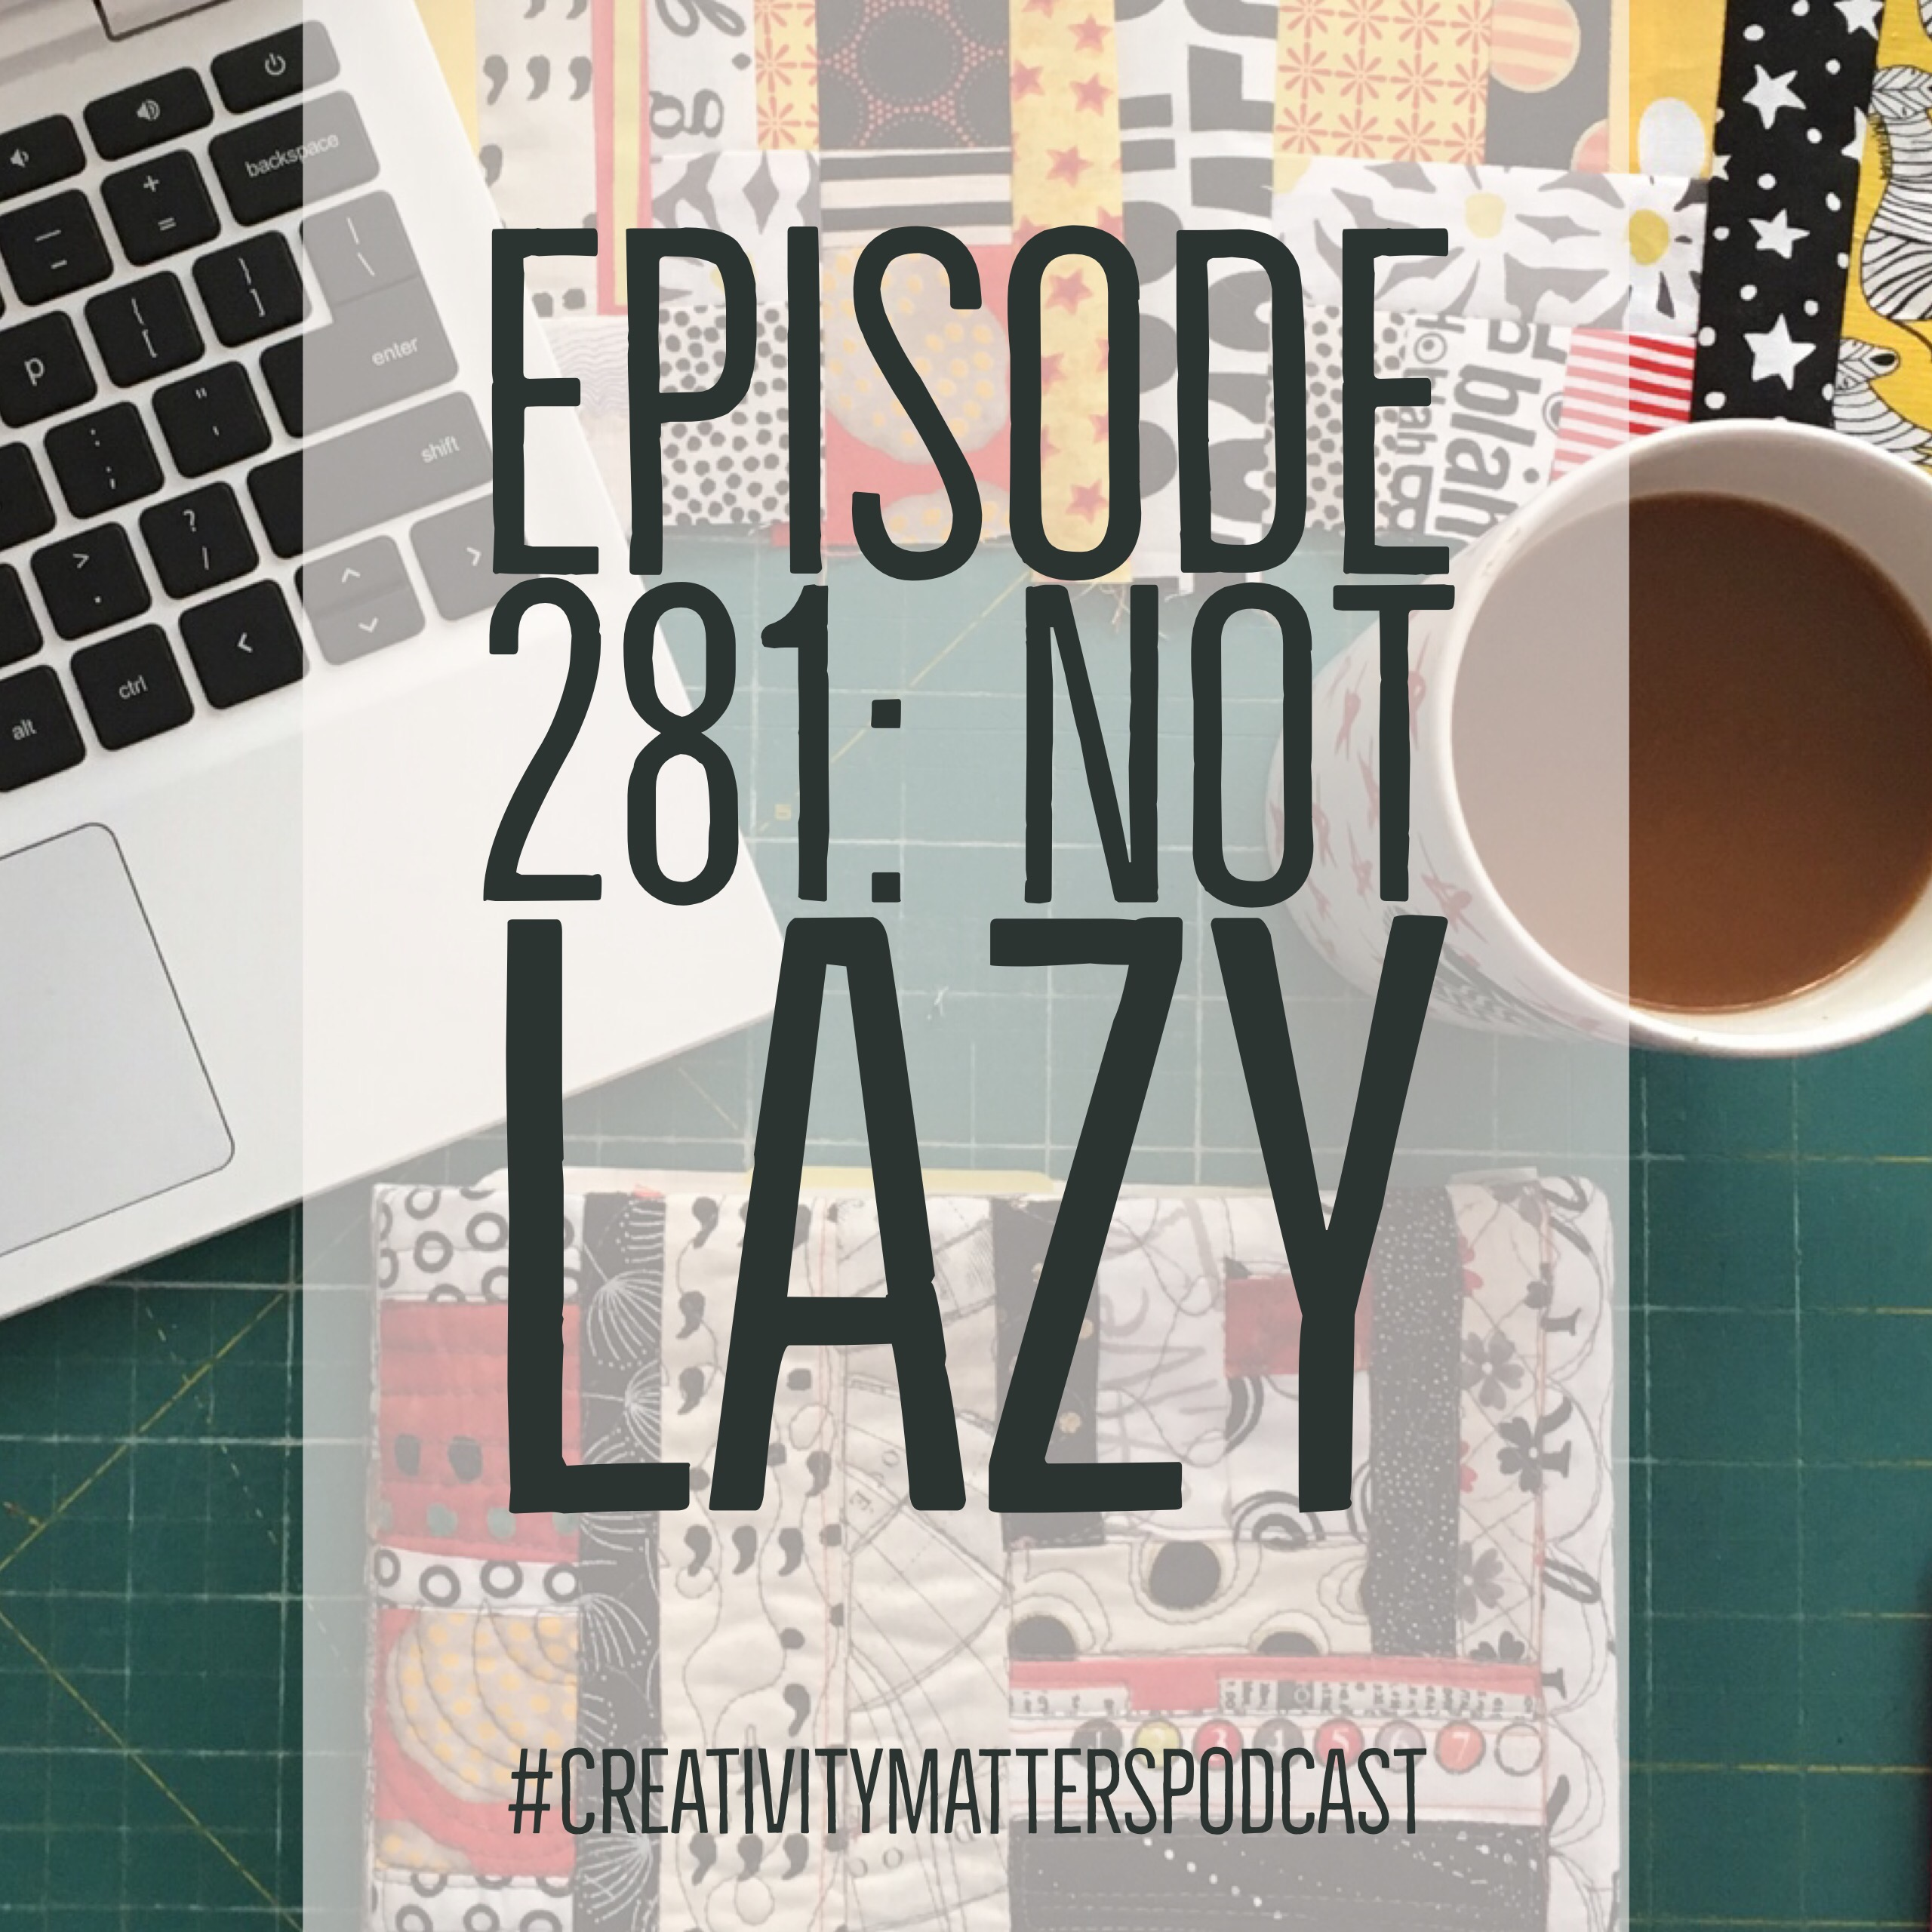 Episode 281: Not Lazy